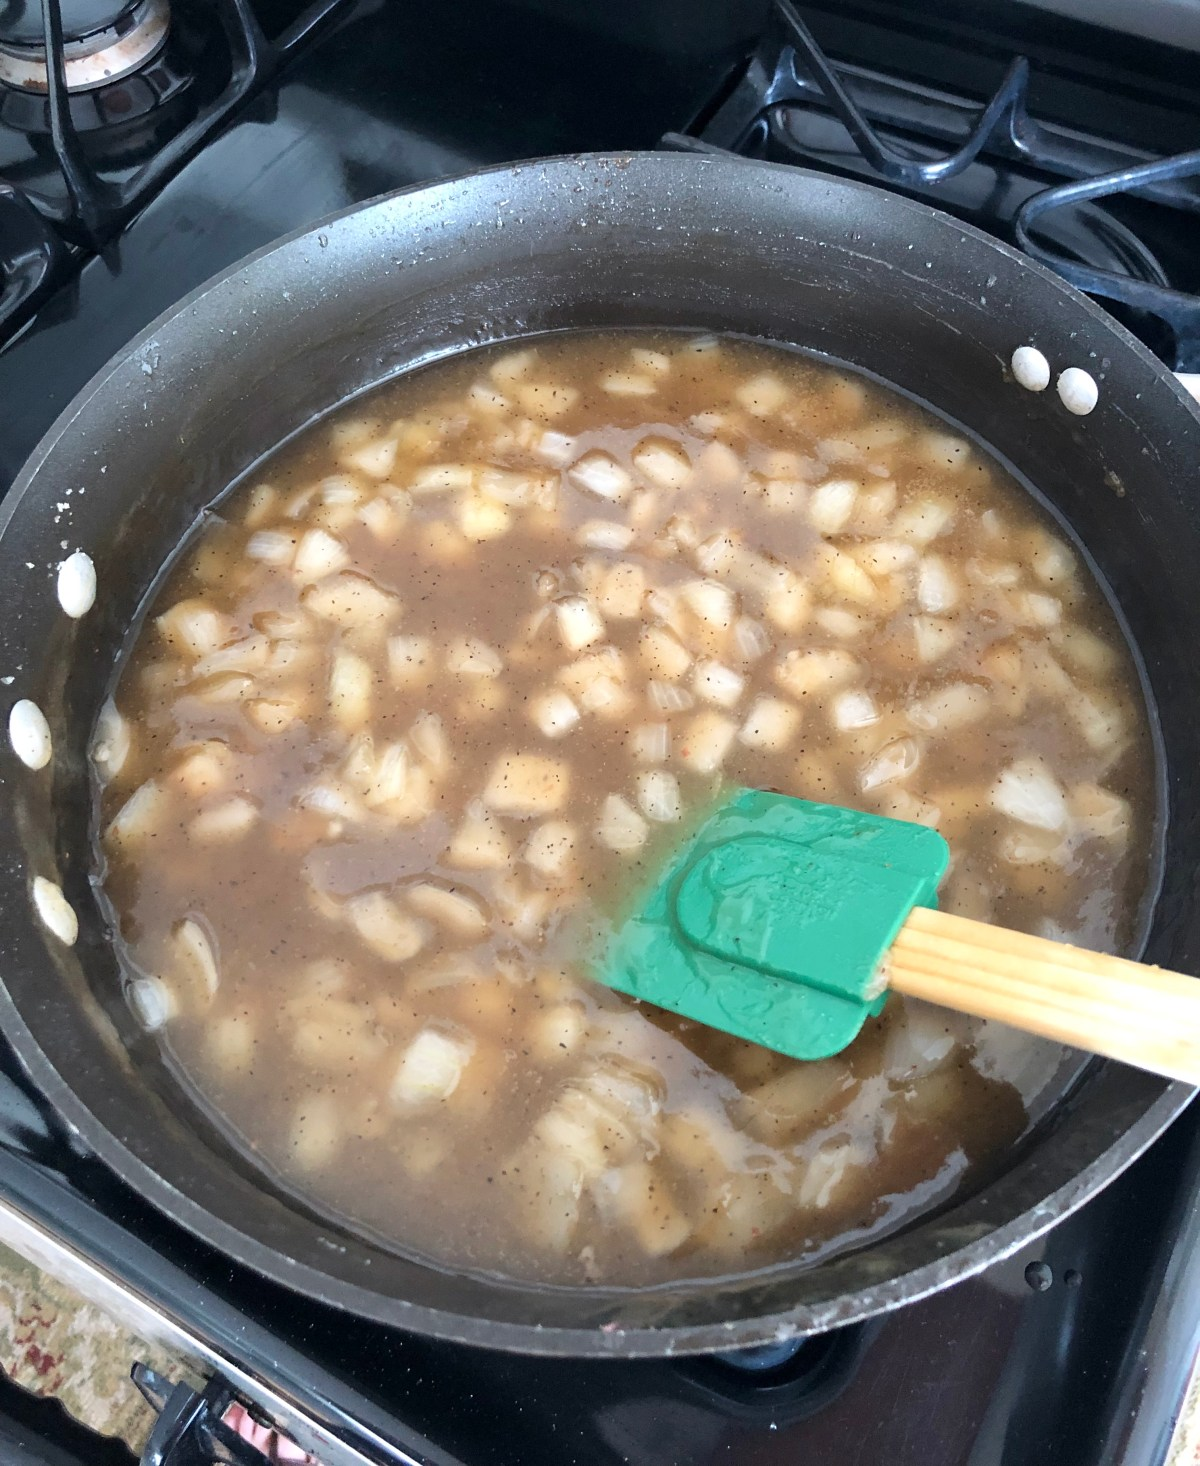 Water and apple cider vinegar are added to the skillet to form a sauce.